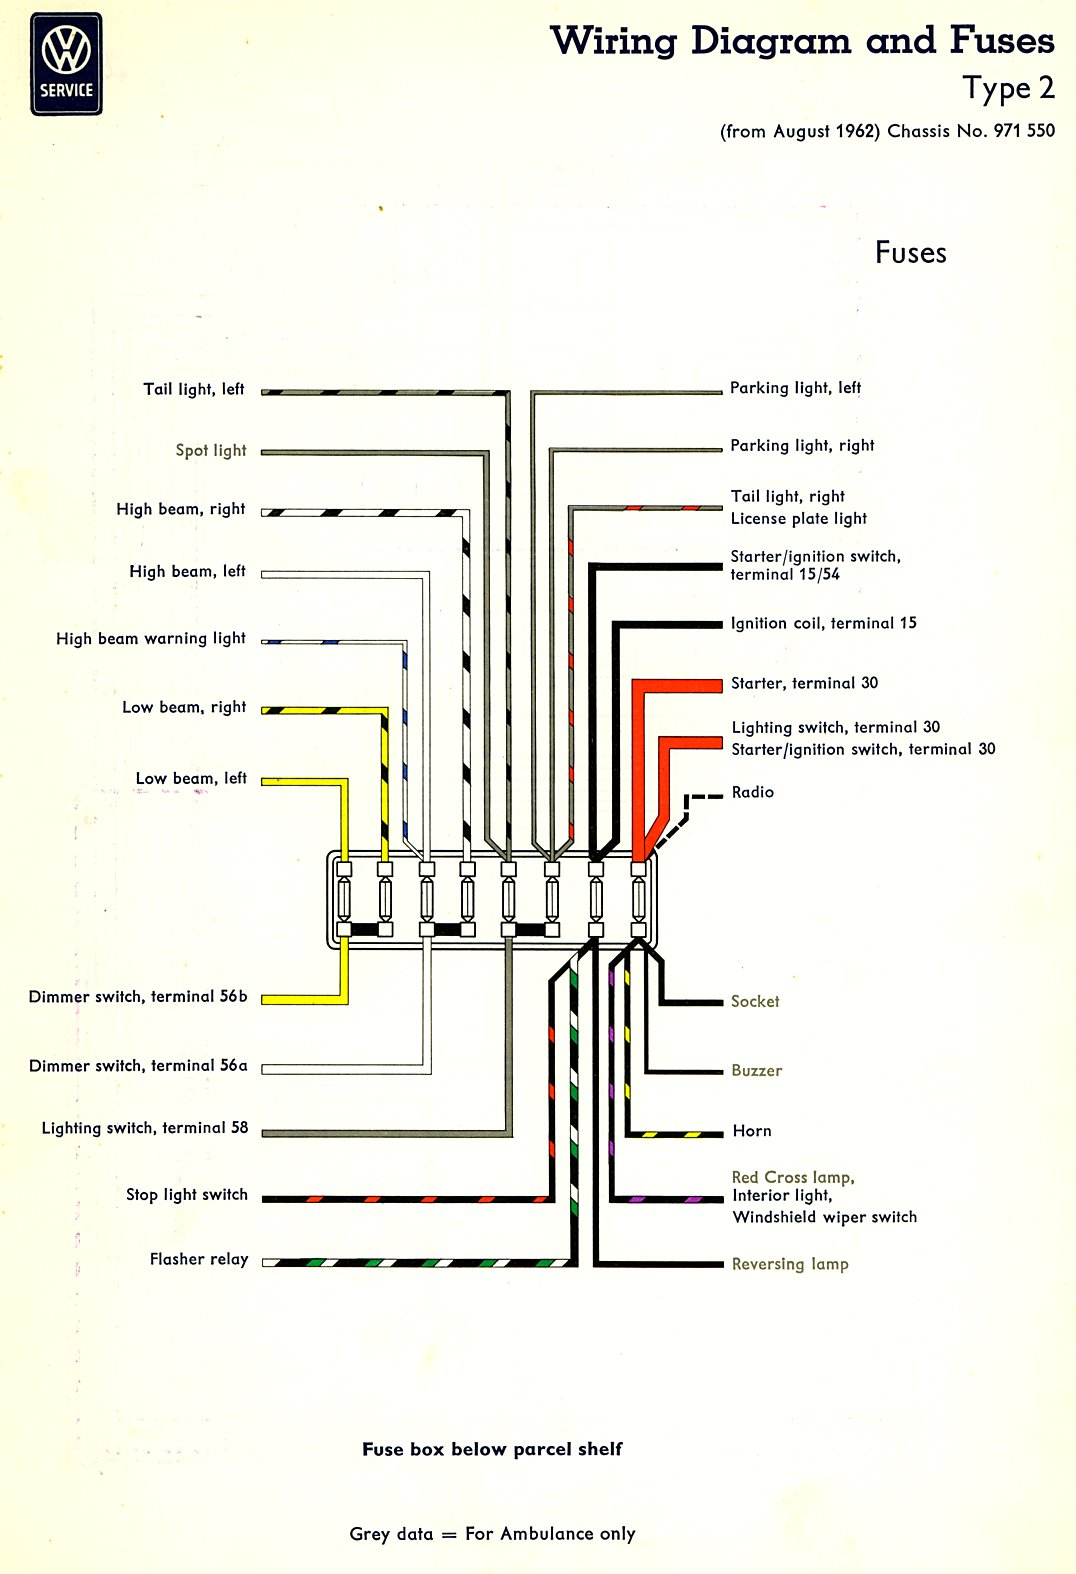 bus_63_fuses thesamba com type 2 wiring diagrams GMC Fuse Box Diagrams at crackthecode.co